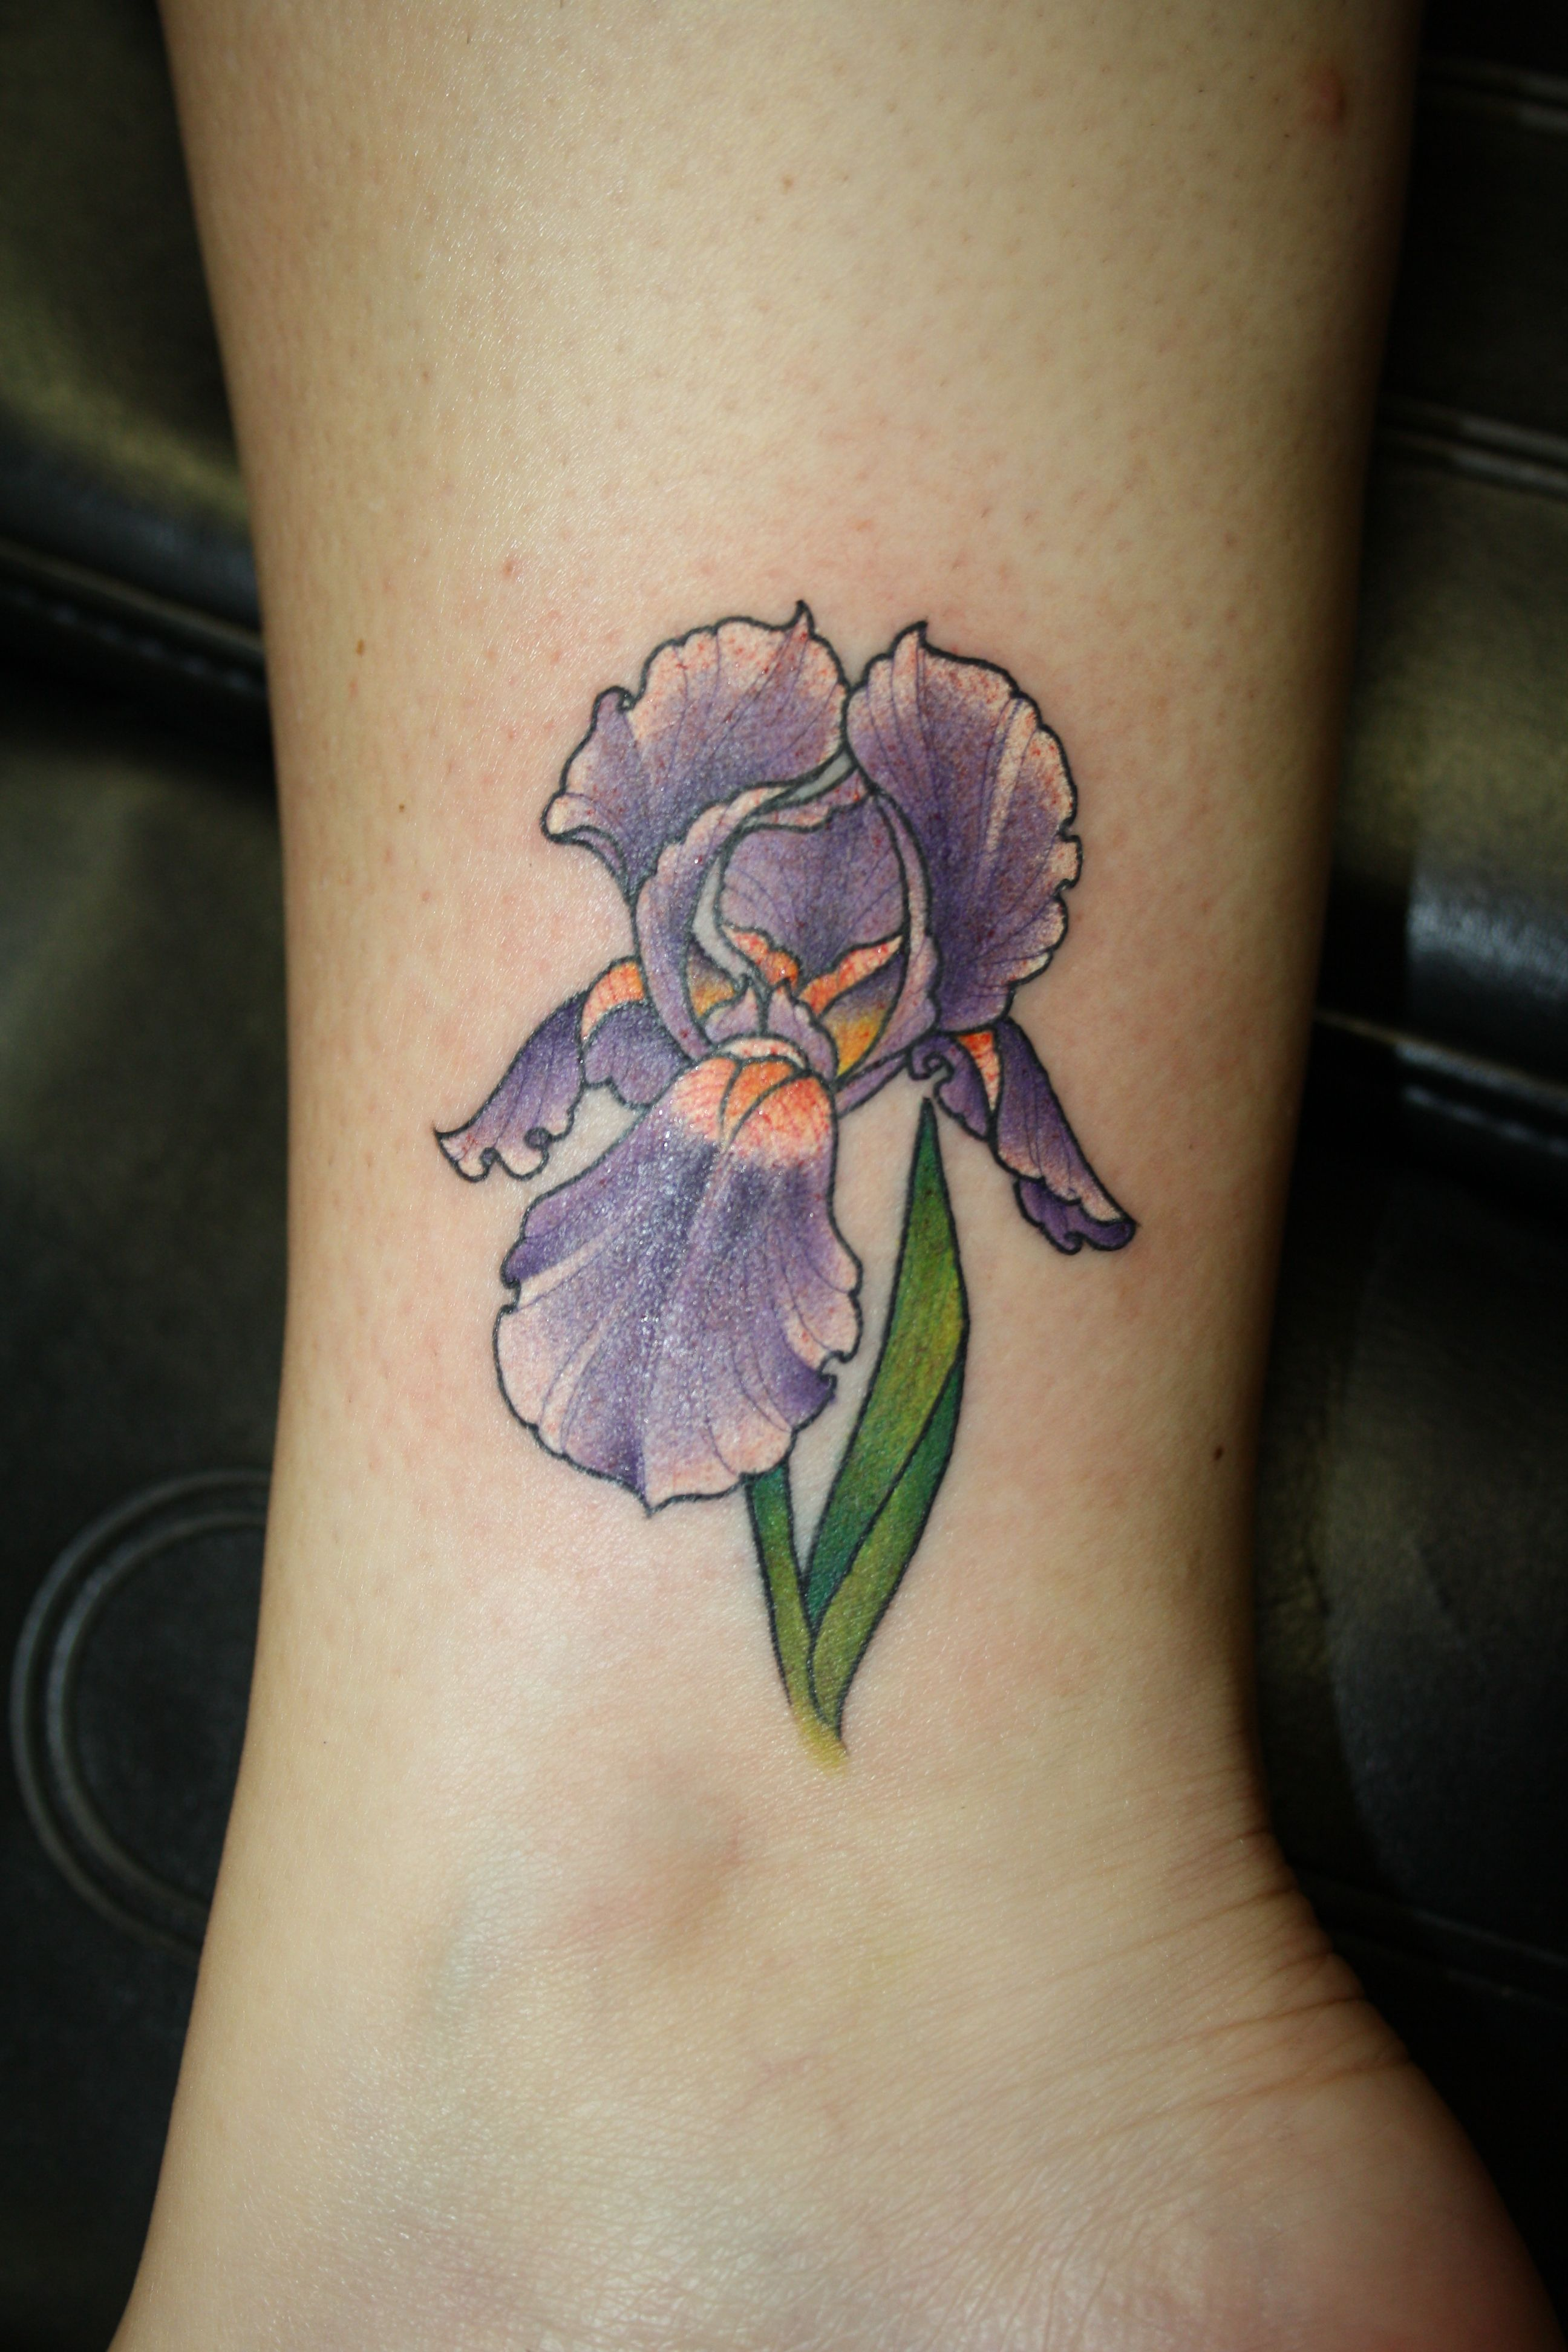 iris tattoo, finally settled on the flower, now the three